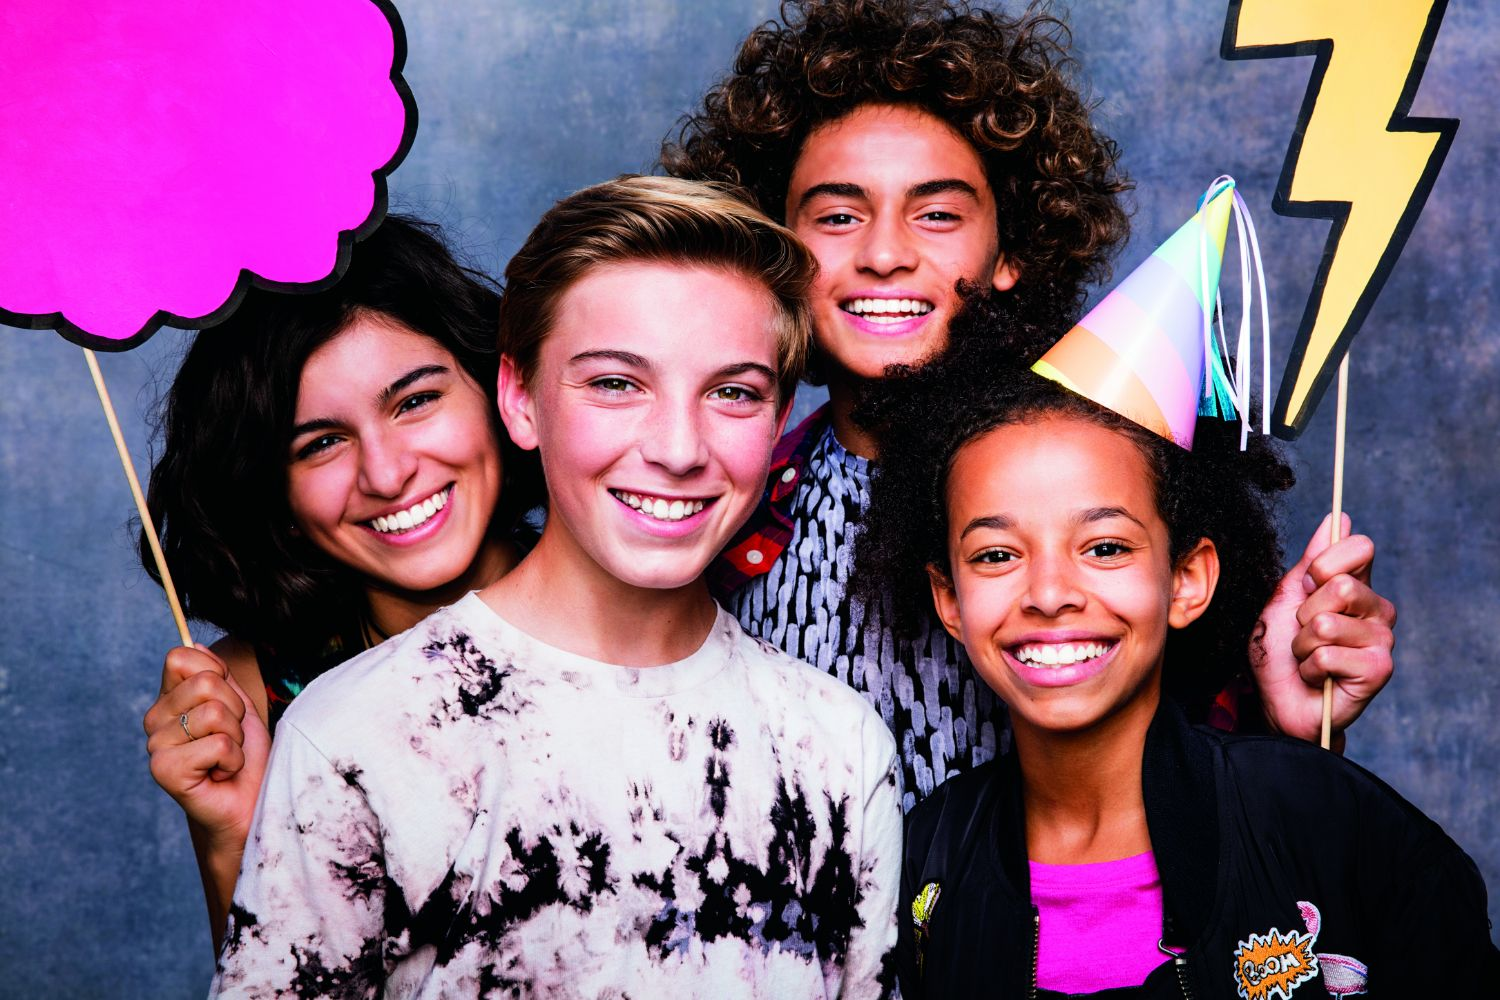 Teens with Invisalign at a photo booth